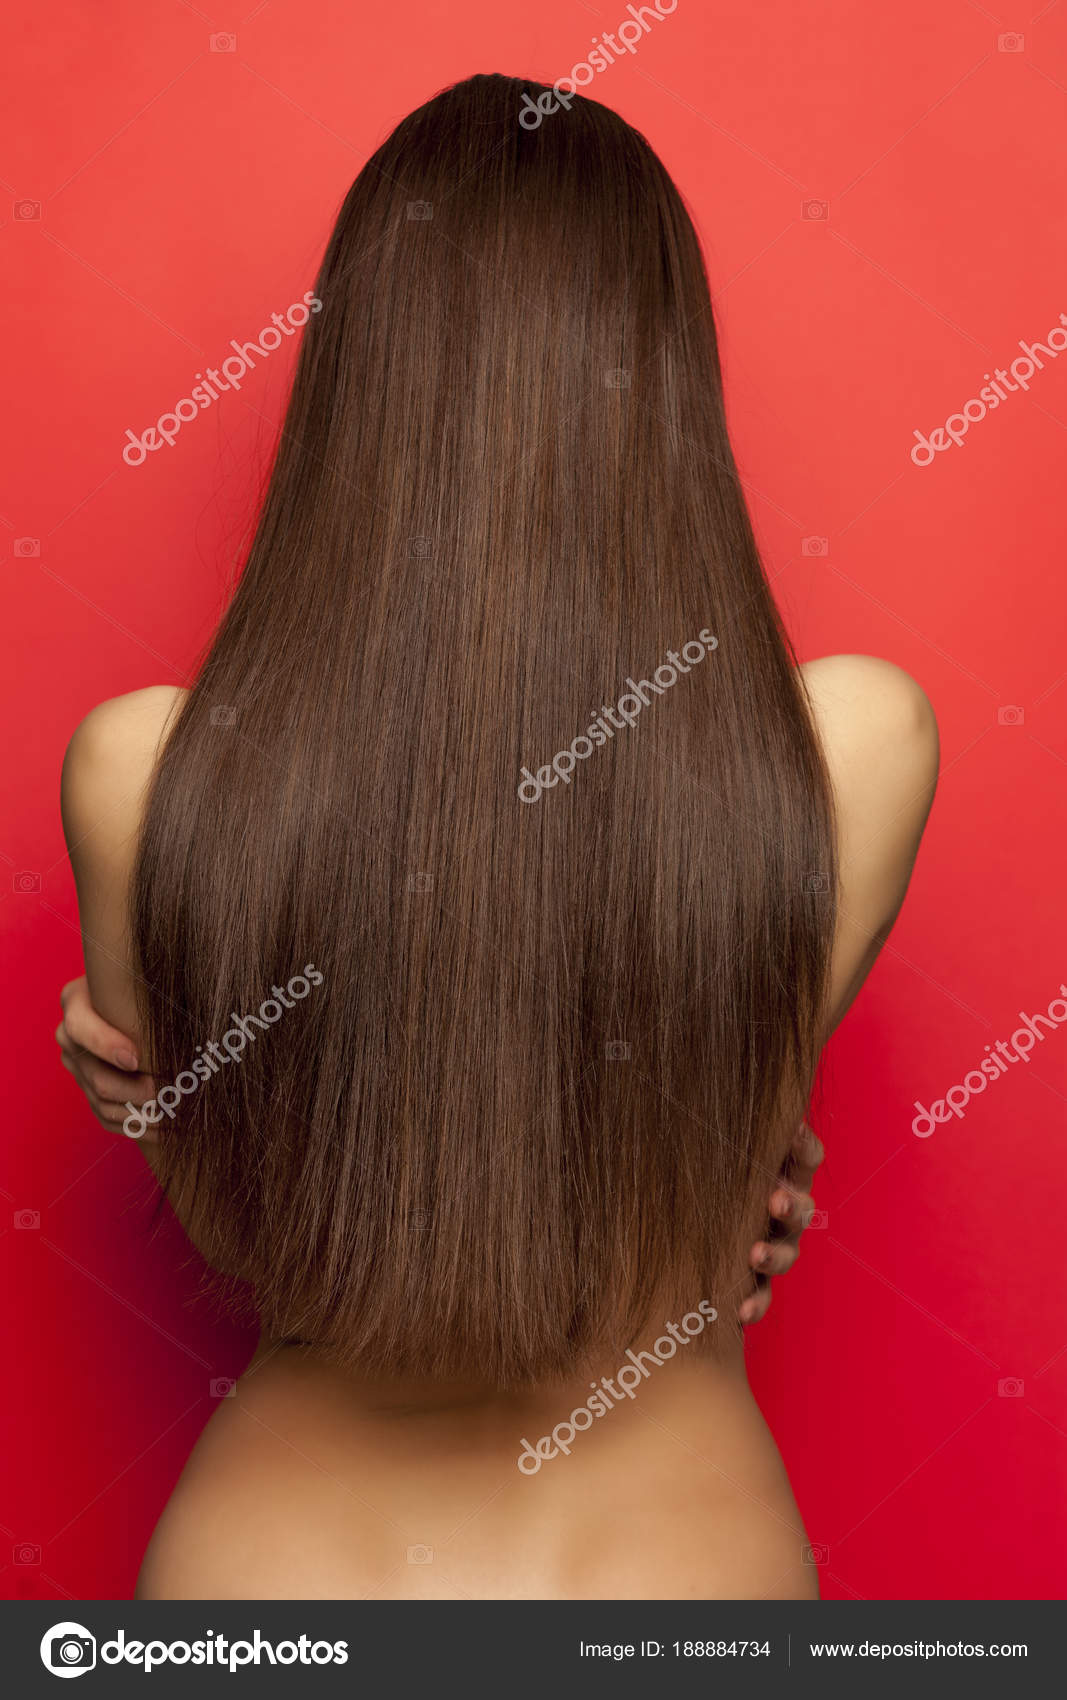 To acquire Hair long back straight picture trends